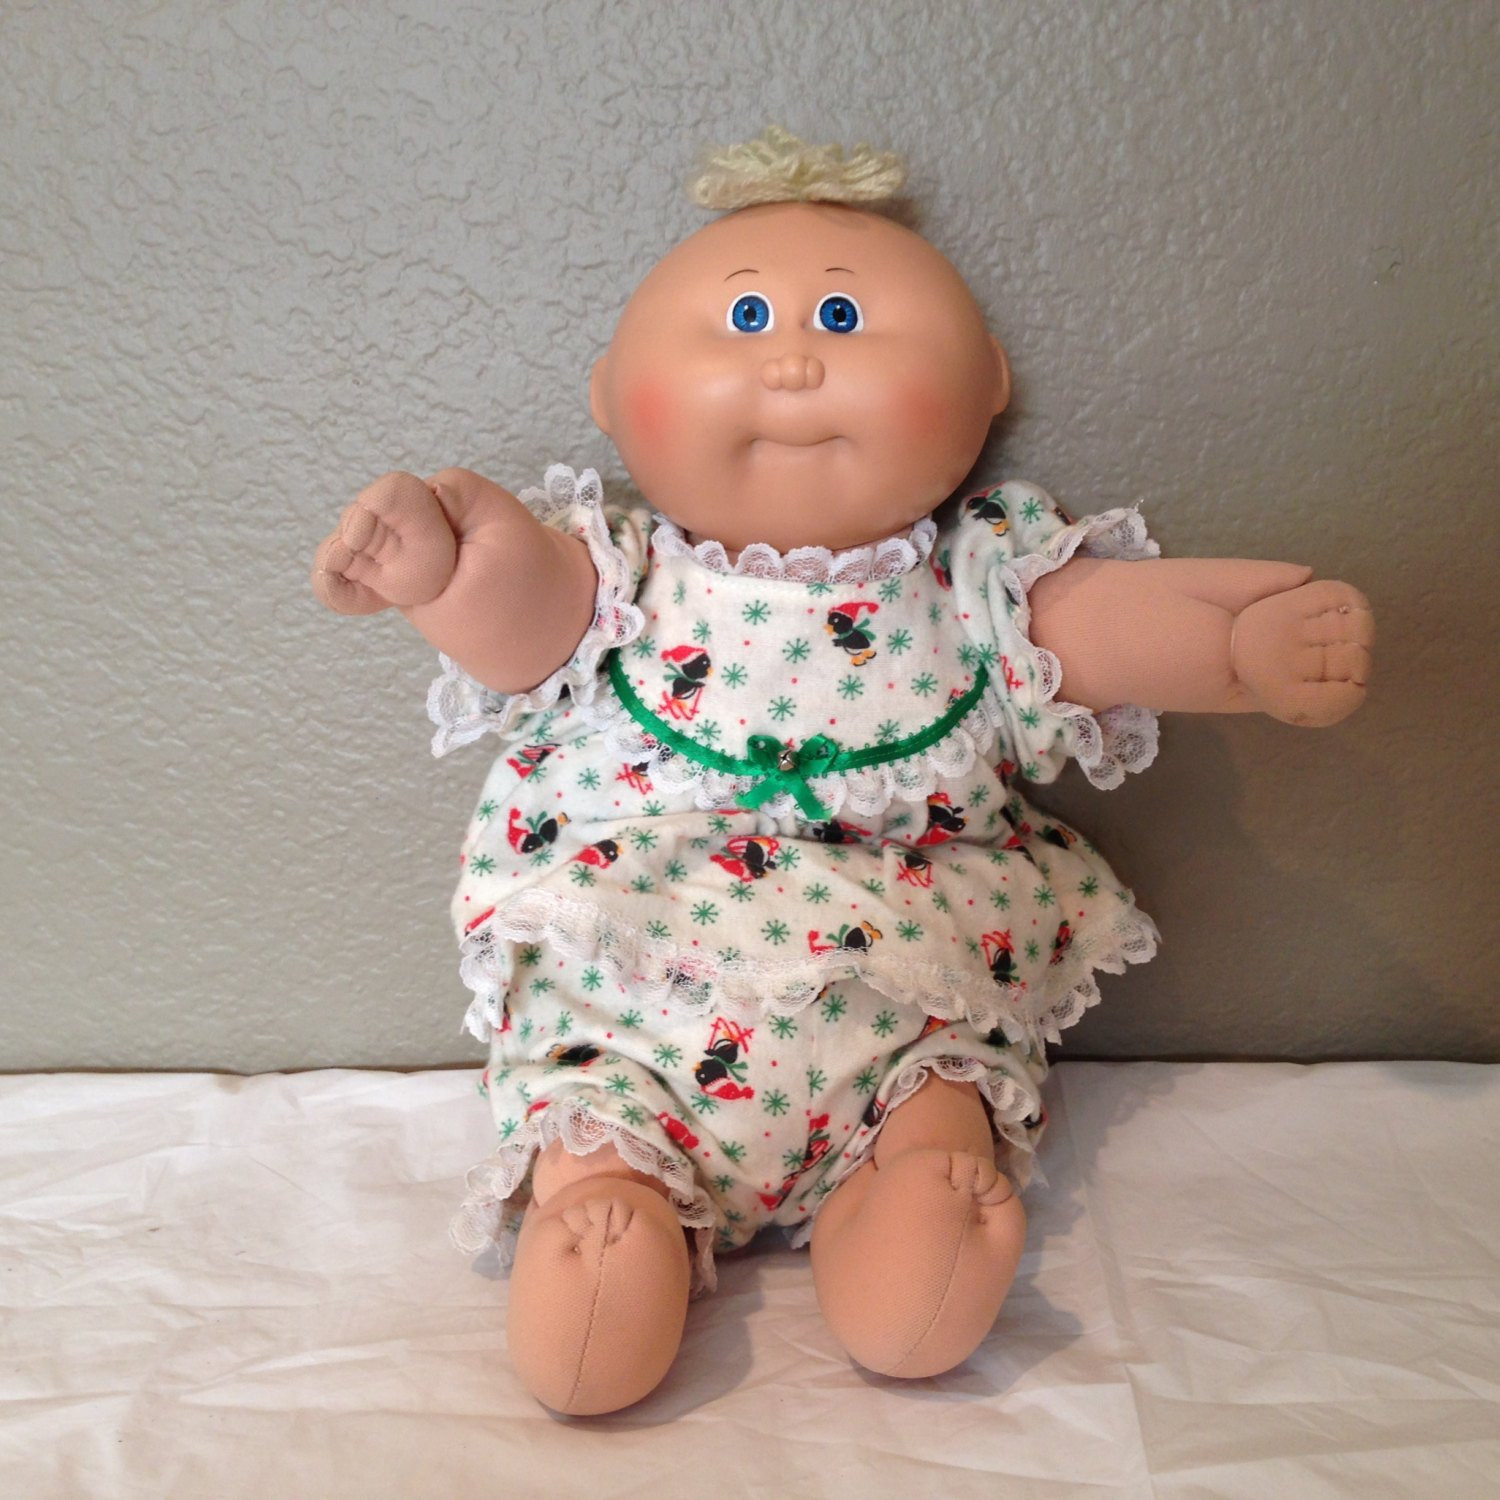 Best Of Vintage 1978 1982 Cabbage Patch Baby Doll 15 Xavier Old Cabbage Patch Doll Of Wonderful 47 Ideas Old Cabbage Patch Doll